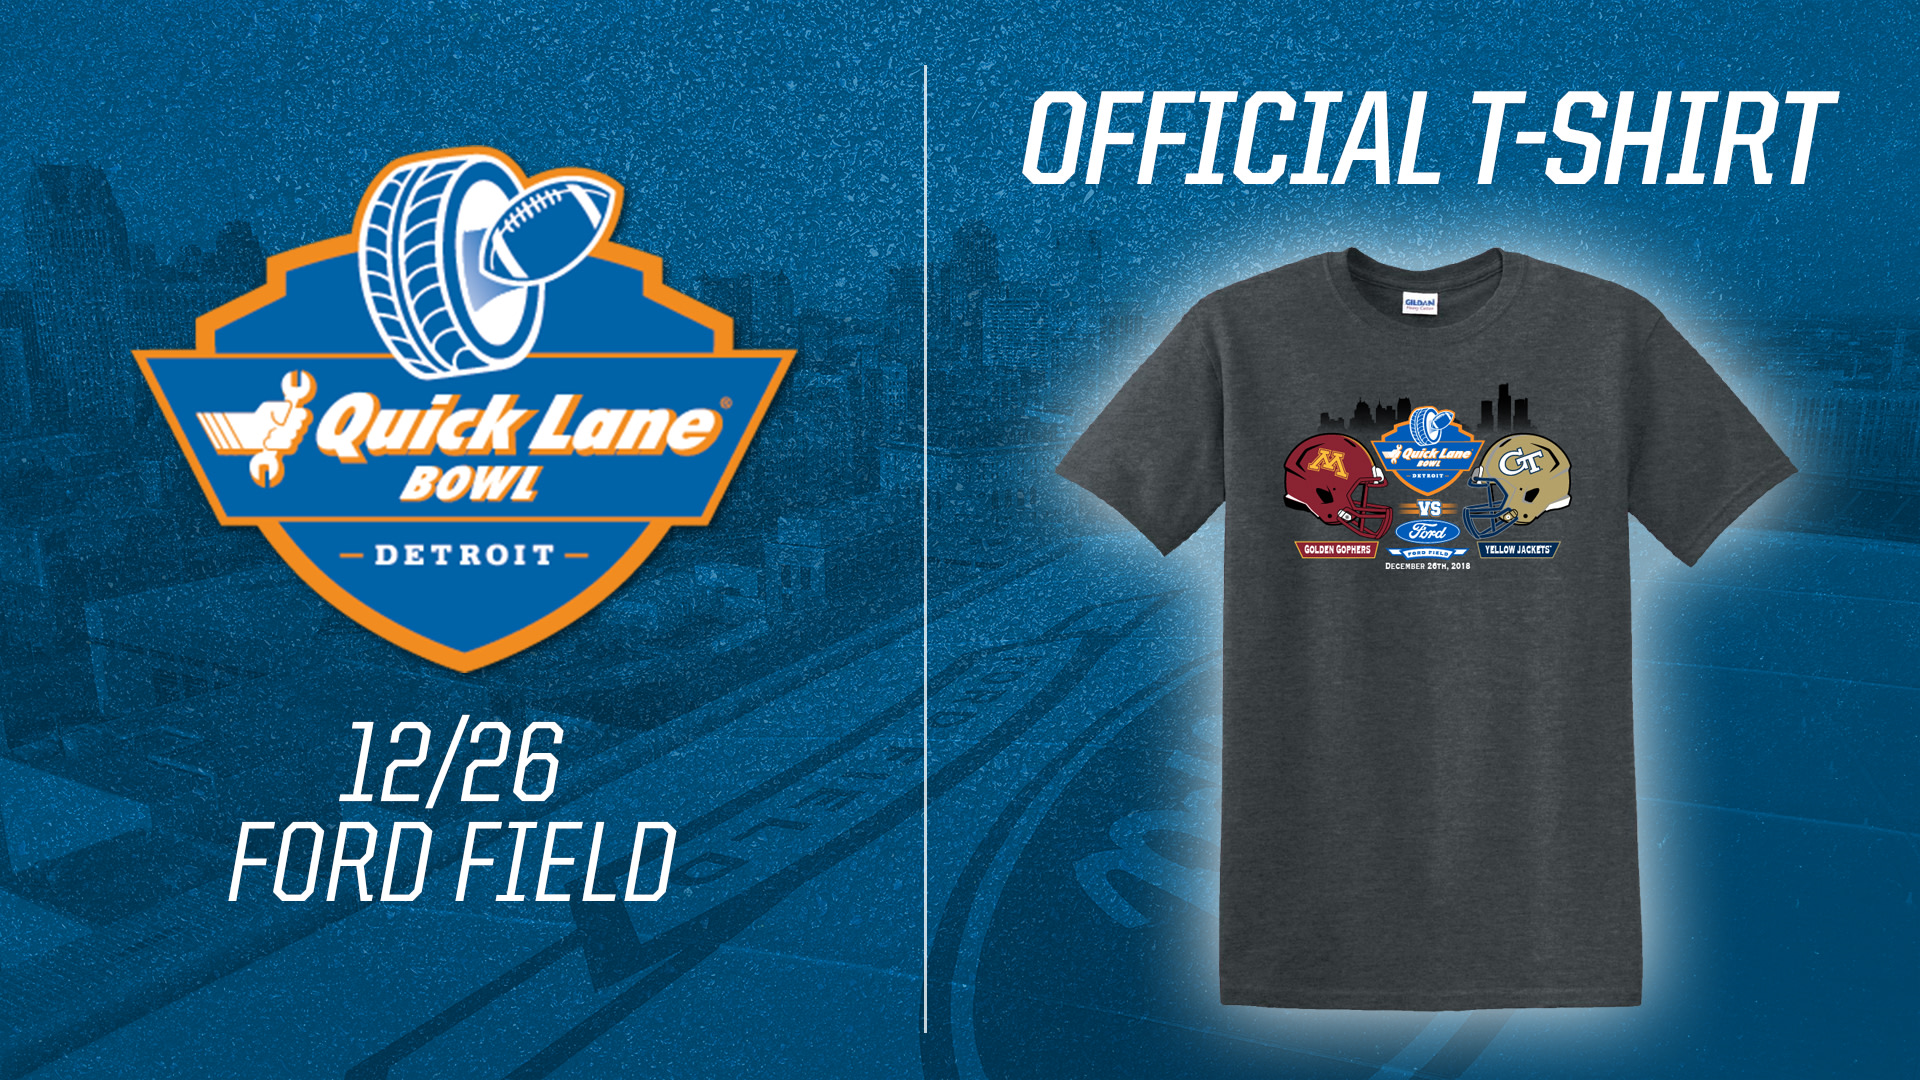 Get your official Quick Lane Bowl merchandise at Ford Field on game day! See you December 26th!